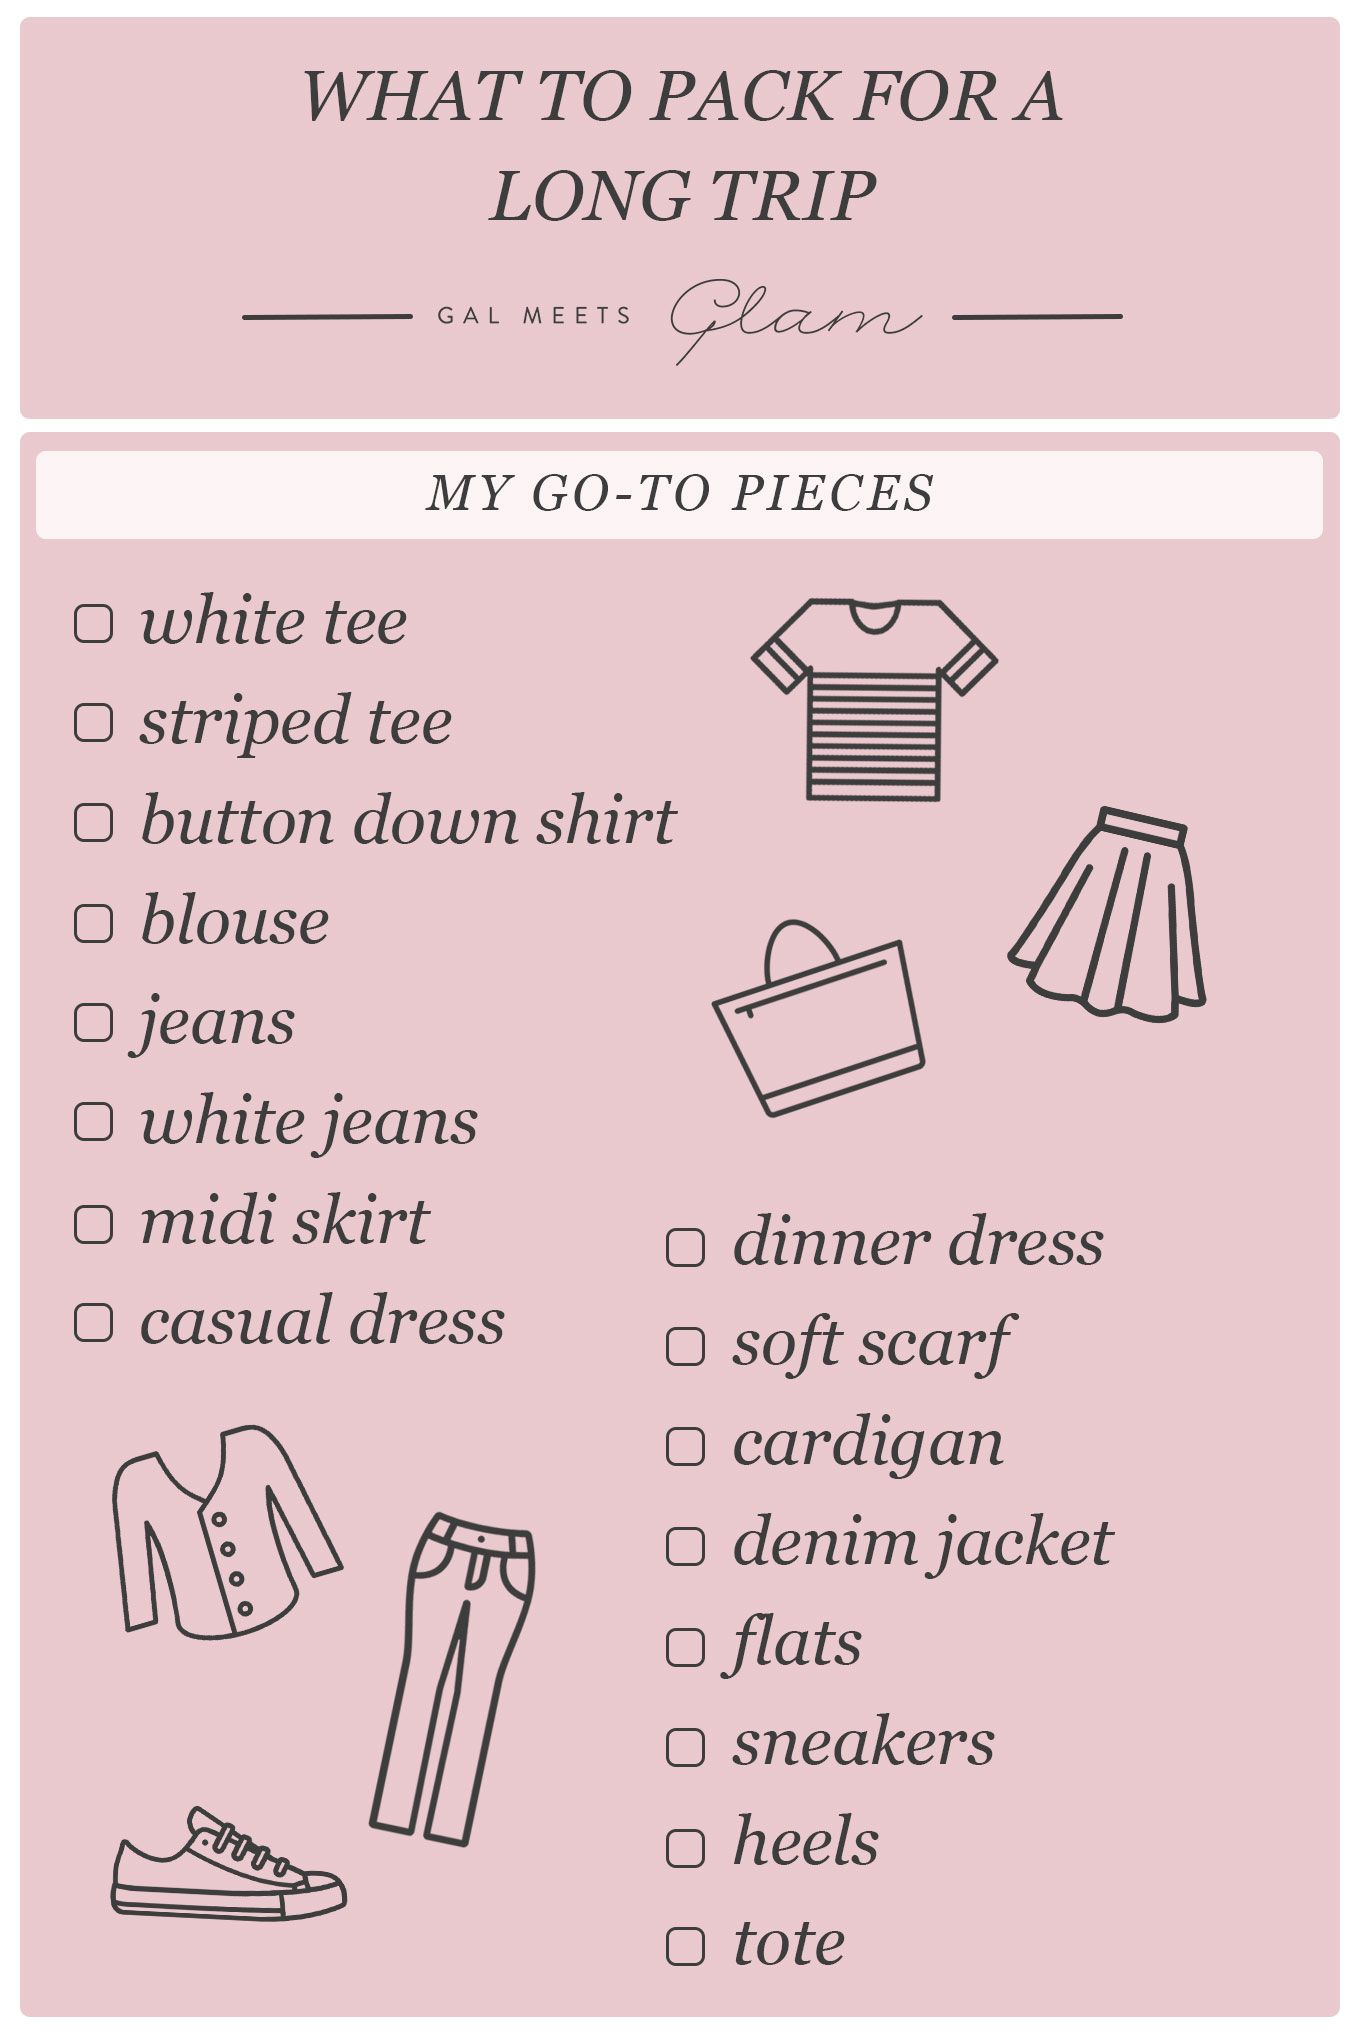 Answering Frequently Asked What To Pack Questions Gal Meets Glam What To Pack Gal Meets Glam Travel Capsule Wardrobe